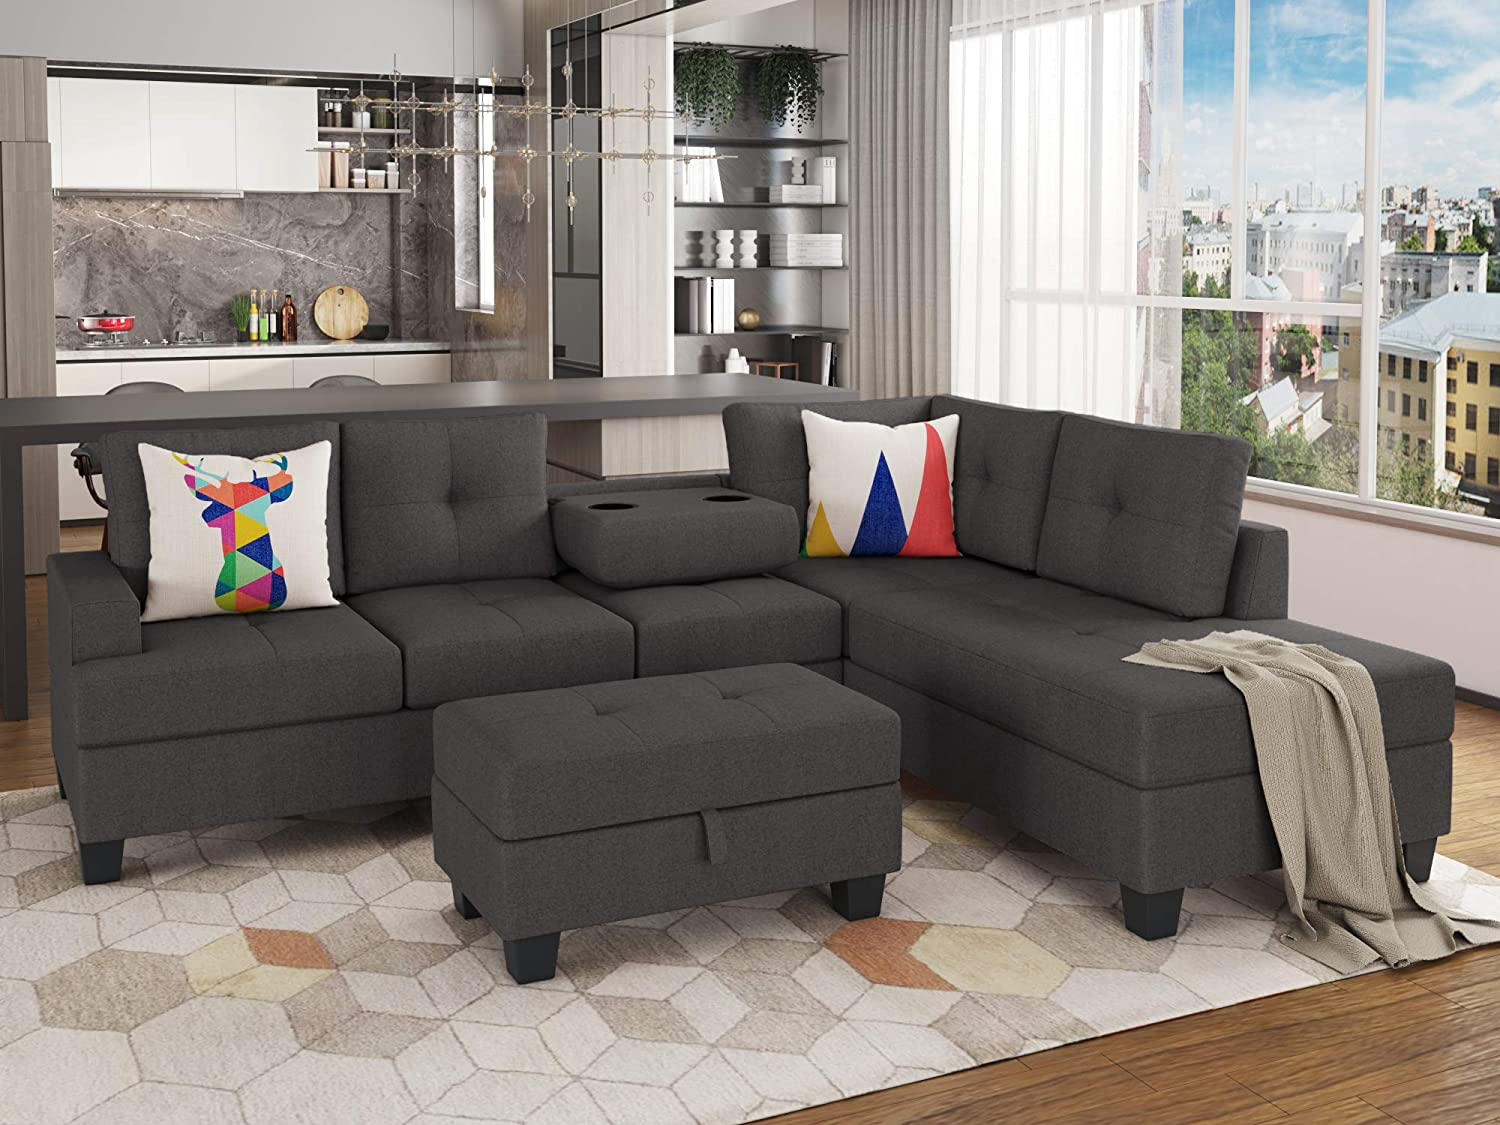 STARTOGOO Black Sectional Couch, L-Shape Sofa Matching Storage Ottoman and Cup Holders for Living Room